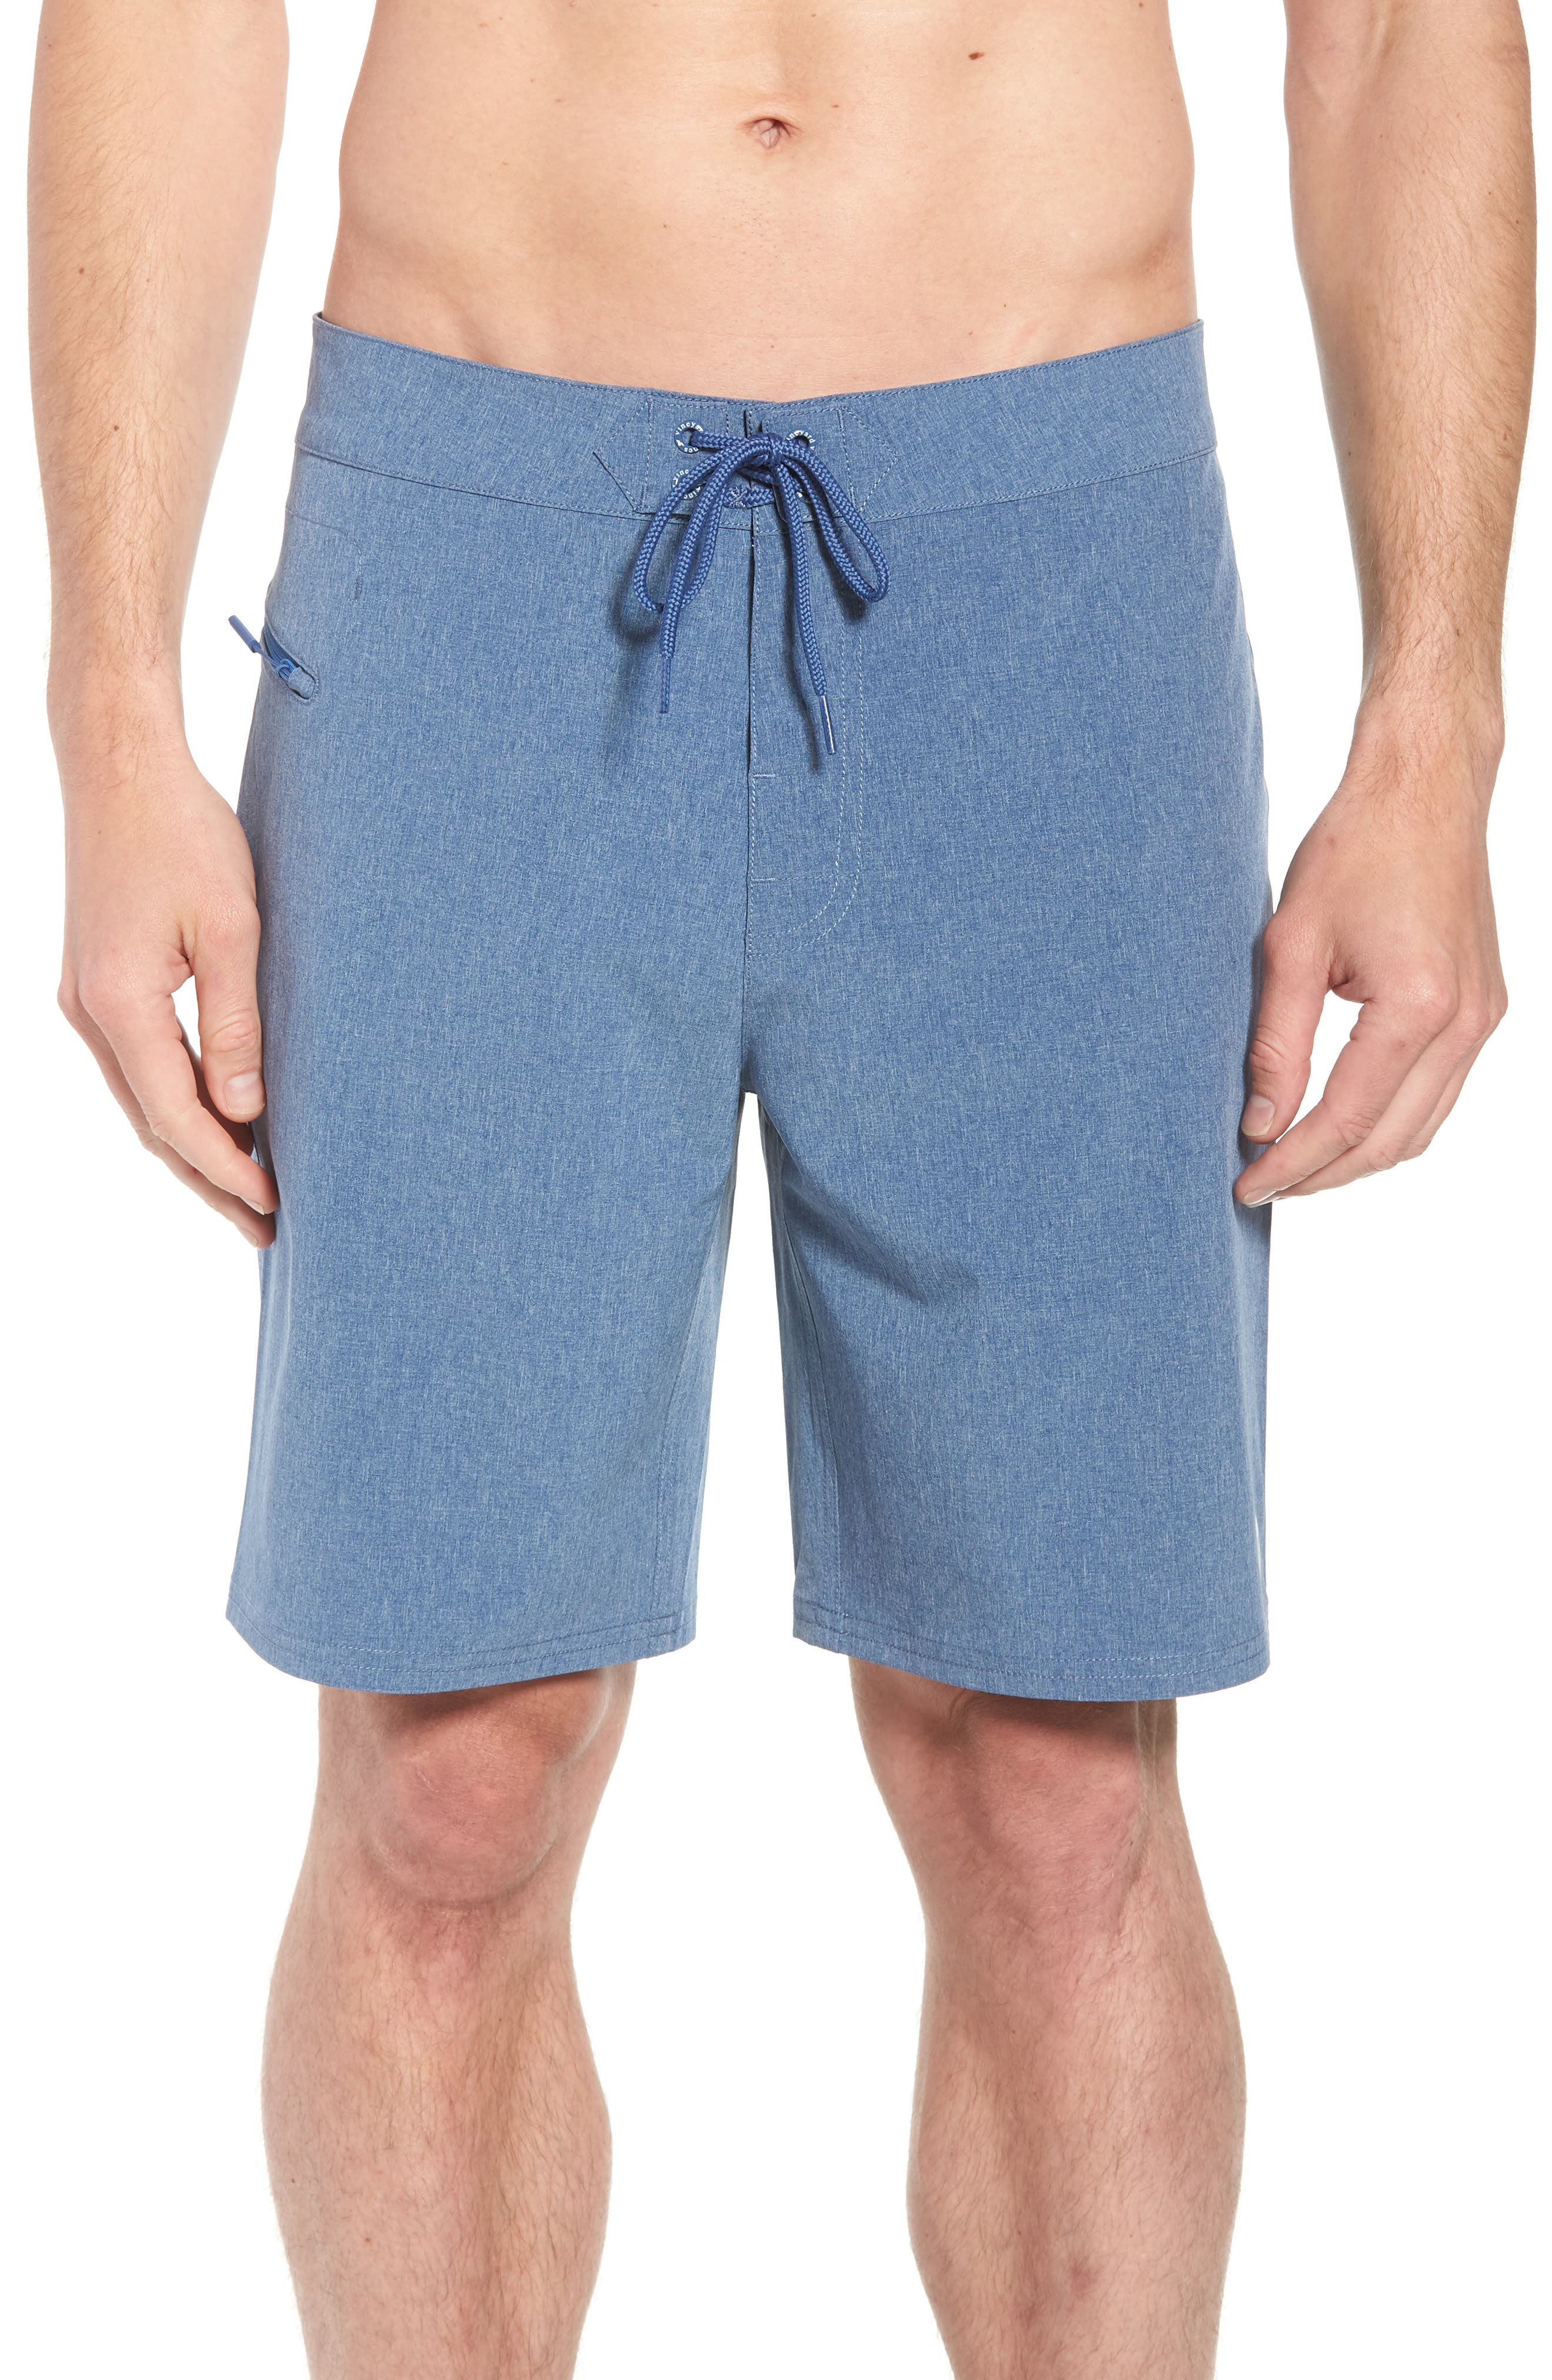 Heather Stretch Board Shorts,                         Main,                         color, Moonshine